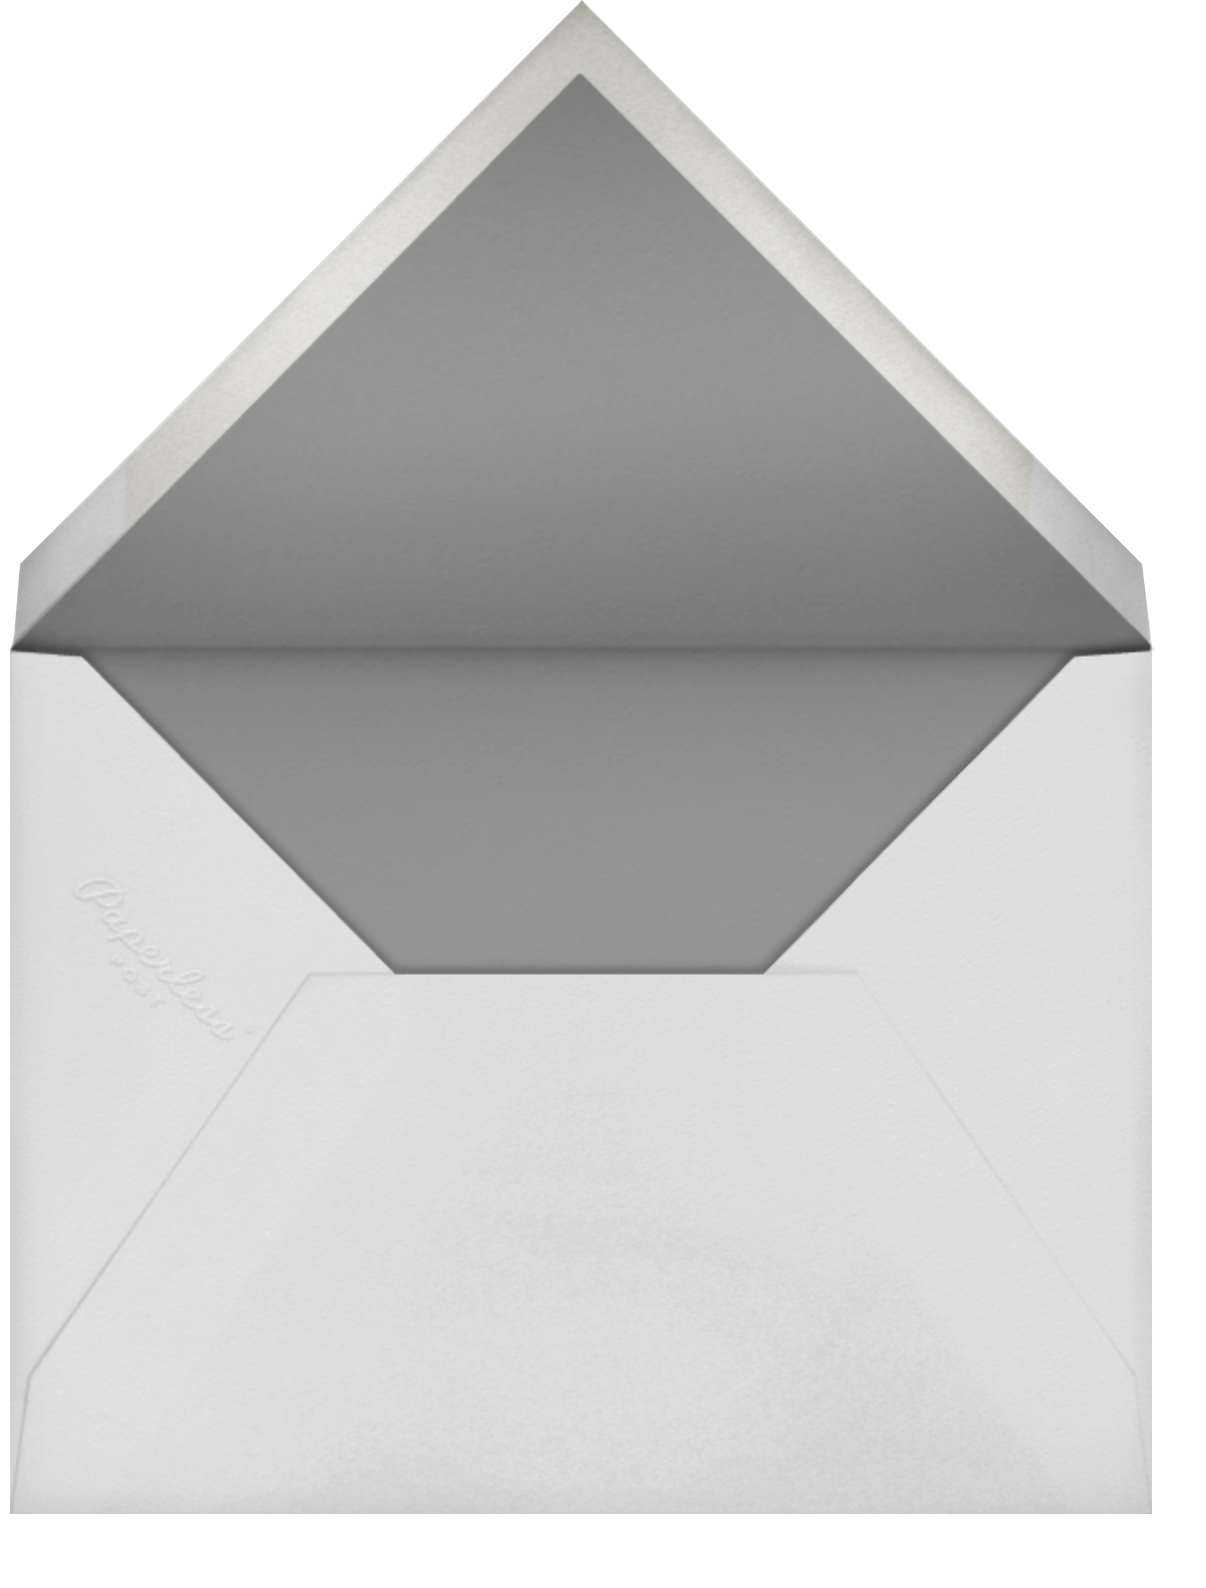 Custom Foil (Two-Sided Tall) - Silver - Paperless Post - Graduation party - envelope back